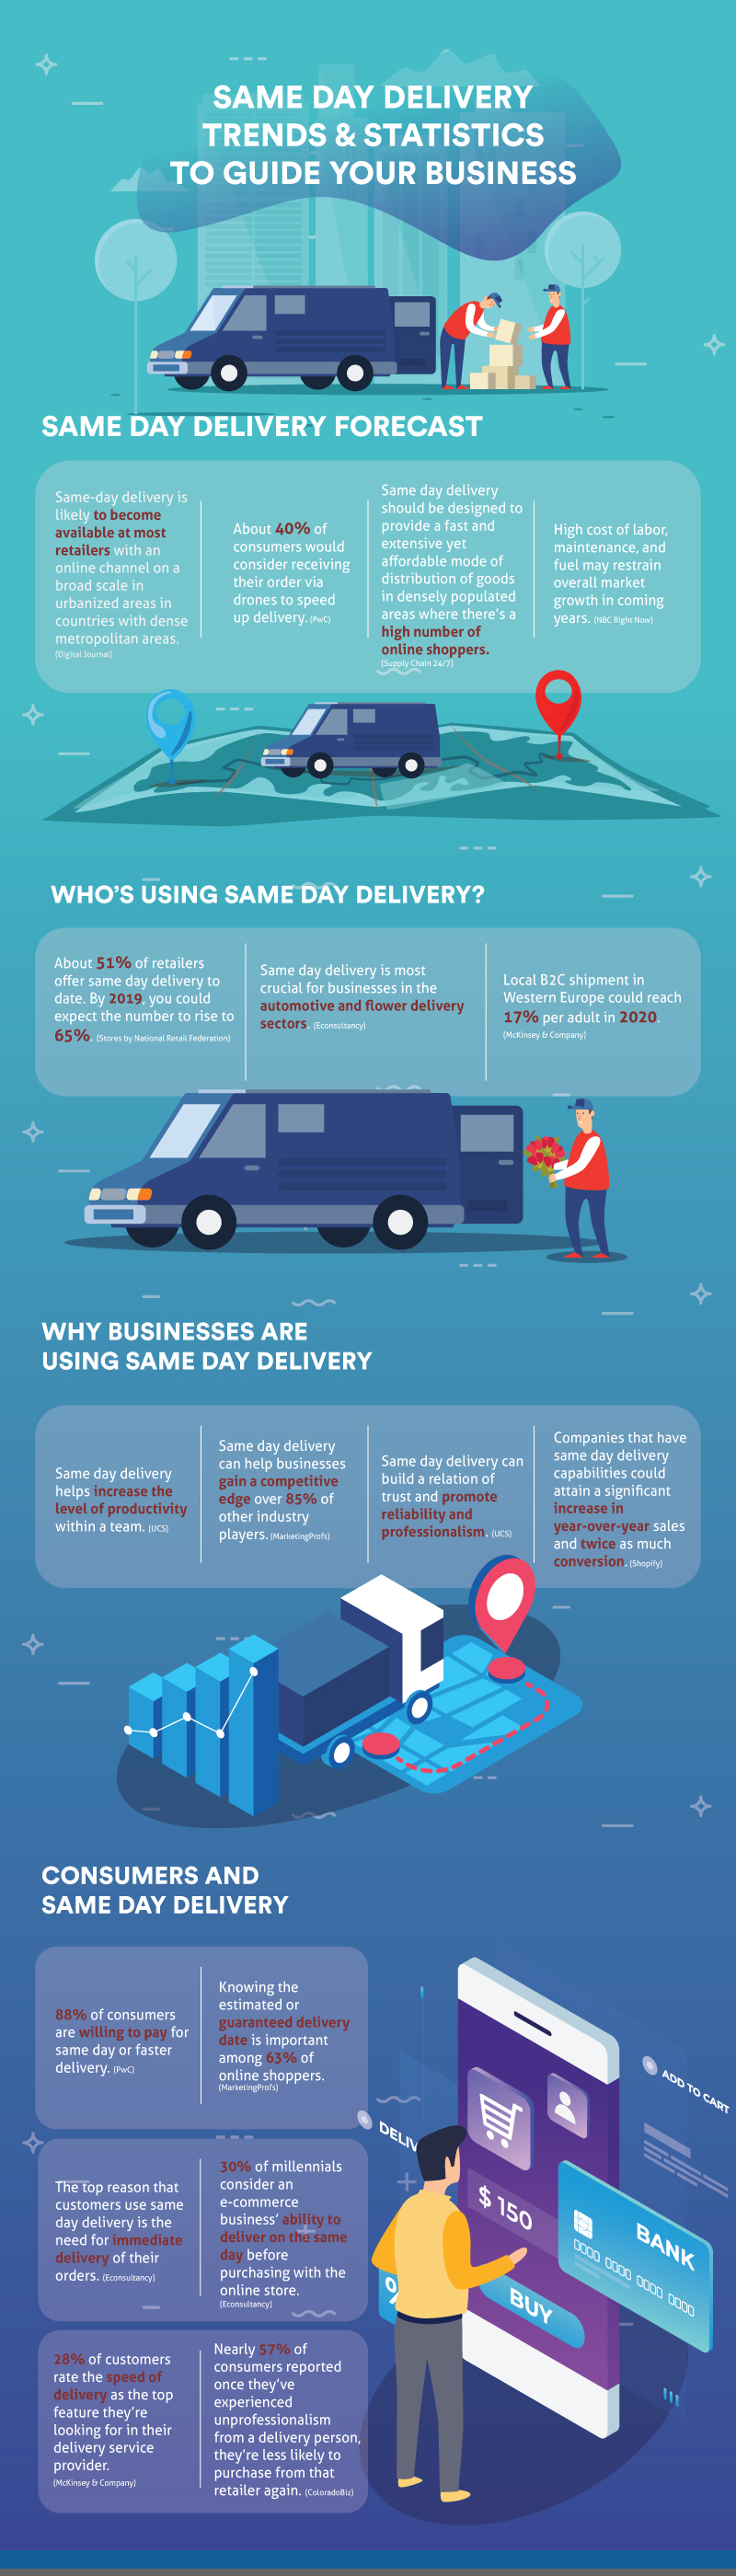 Same-Day-Delivery-Trends-and-Statistics-to-Guide-Your-Business-Infographic